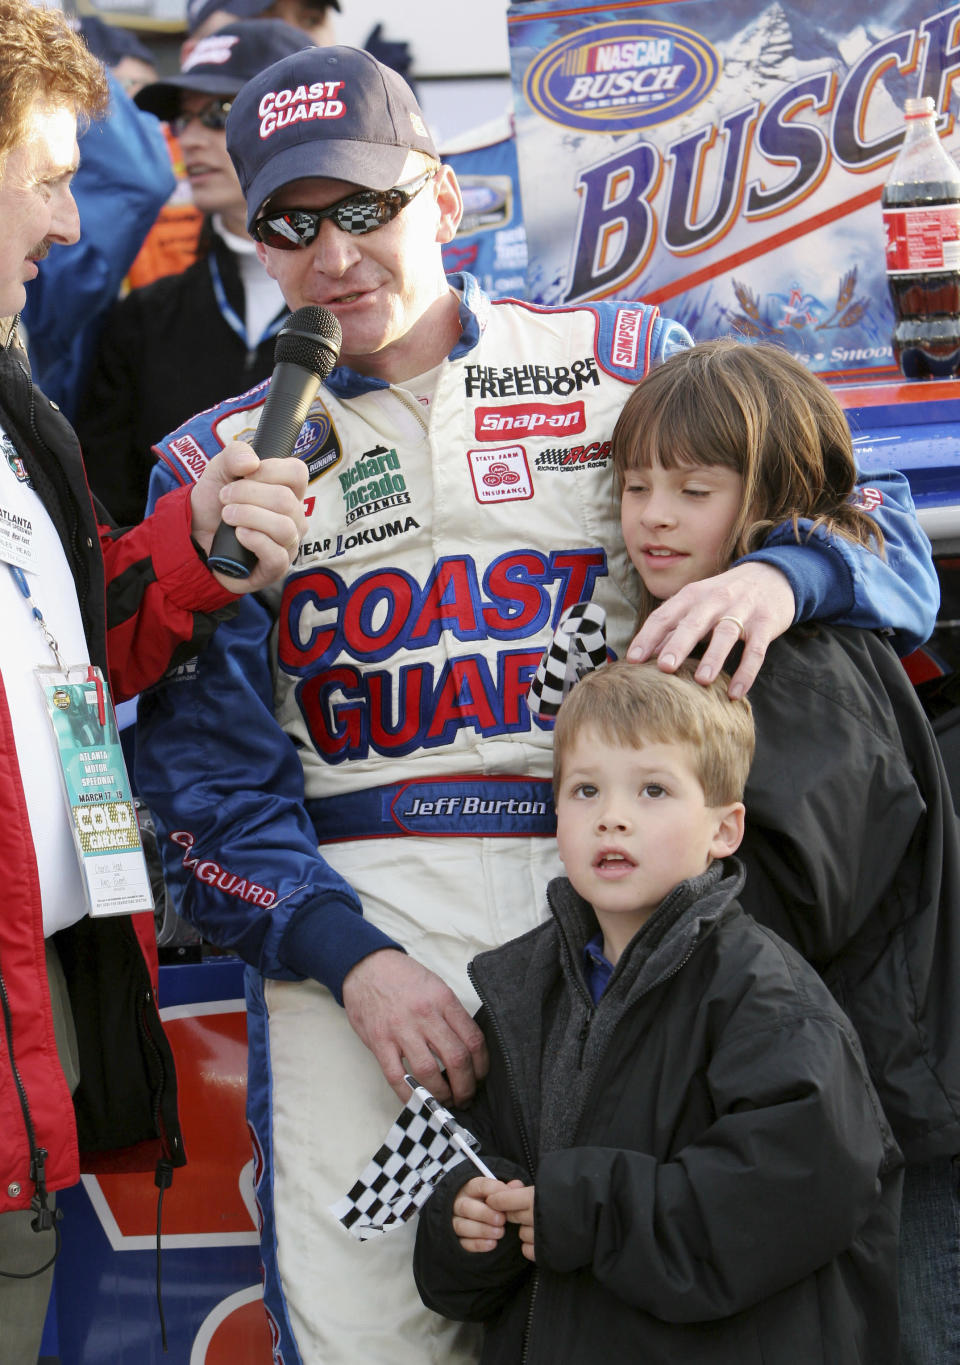 FILE - In this March 18, 2006, file photo, Jeff Burton puts his arm around his children Paige, 10, and Harrison, 5, as he is interviewed in victory lane after winning the NASCAR Busch Series' Nicorette 300 auto race at Atlanta Motor Speedway in Hampton, Ga., in this Saturday, March 18, 2006, file photo. Harrison Burton is set to make his NASCAR Cup Series debut at Talladega Superspeedway. (AP Photo/Gene Blythe, File)